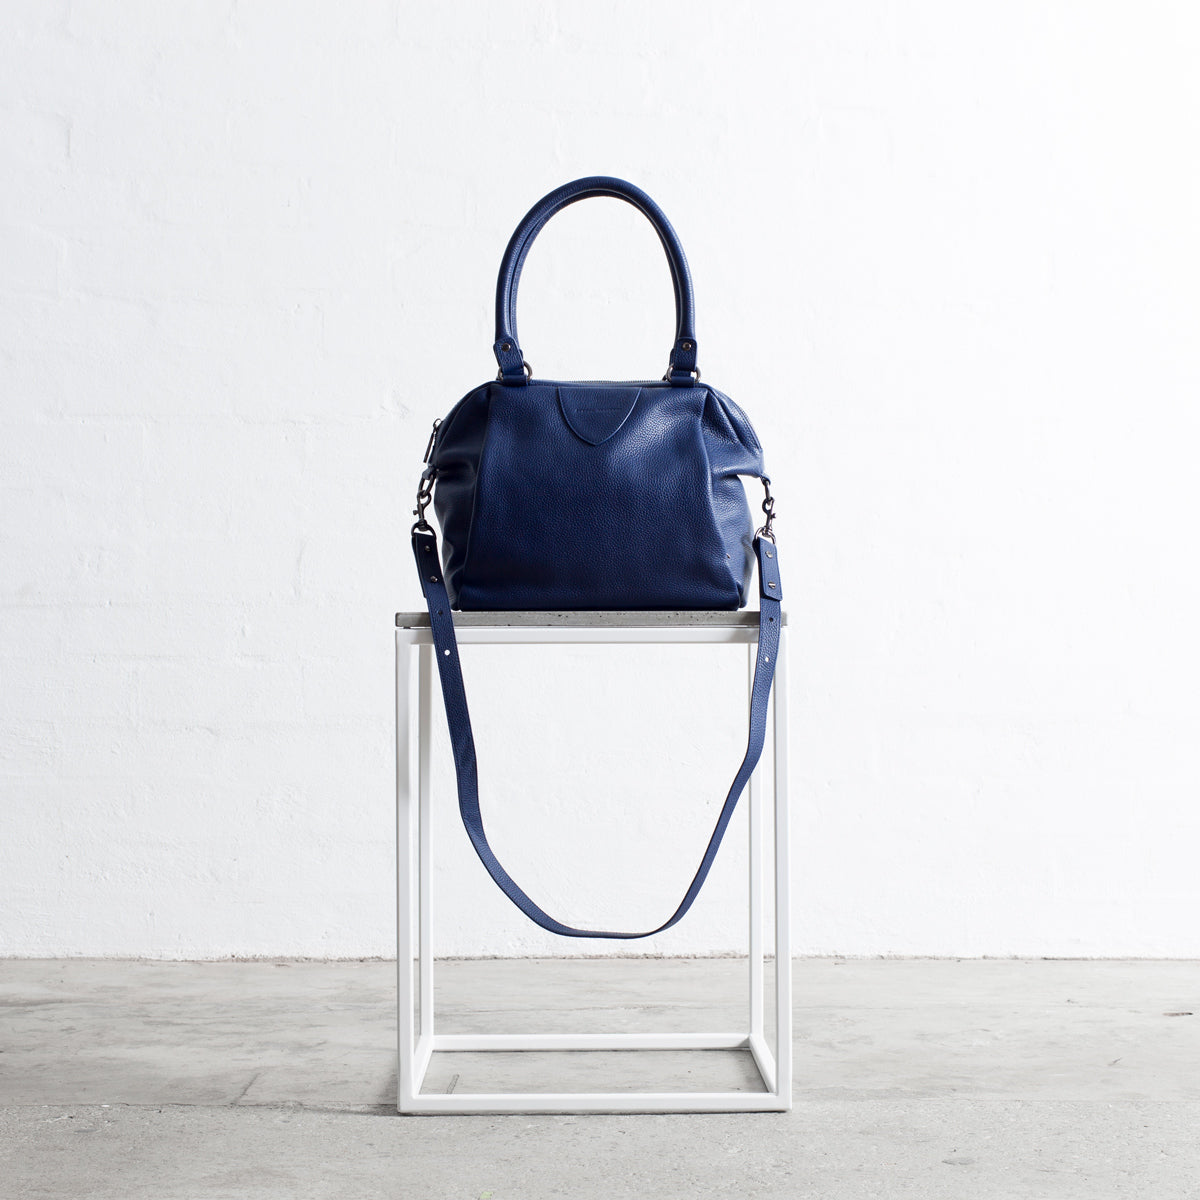 Status Anxiety Force Of Being Women's Leather Bag Blue